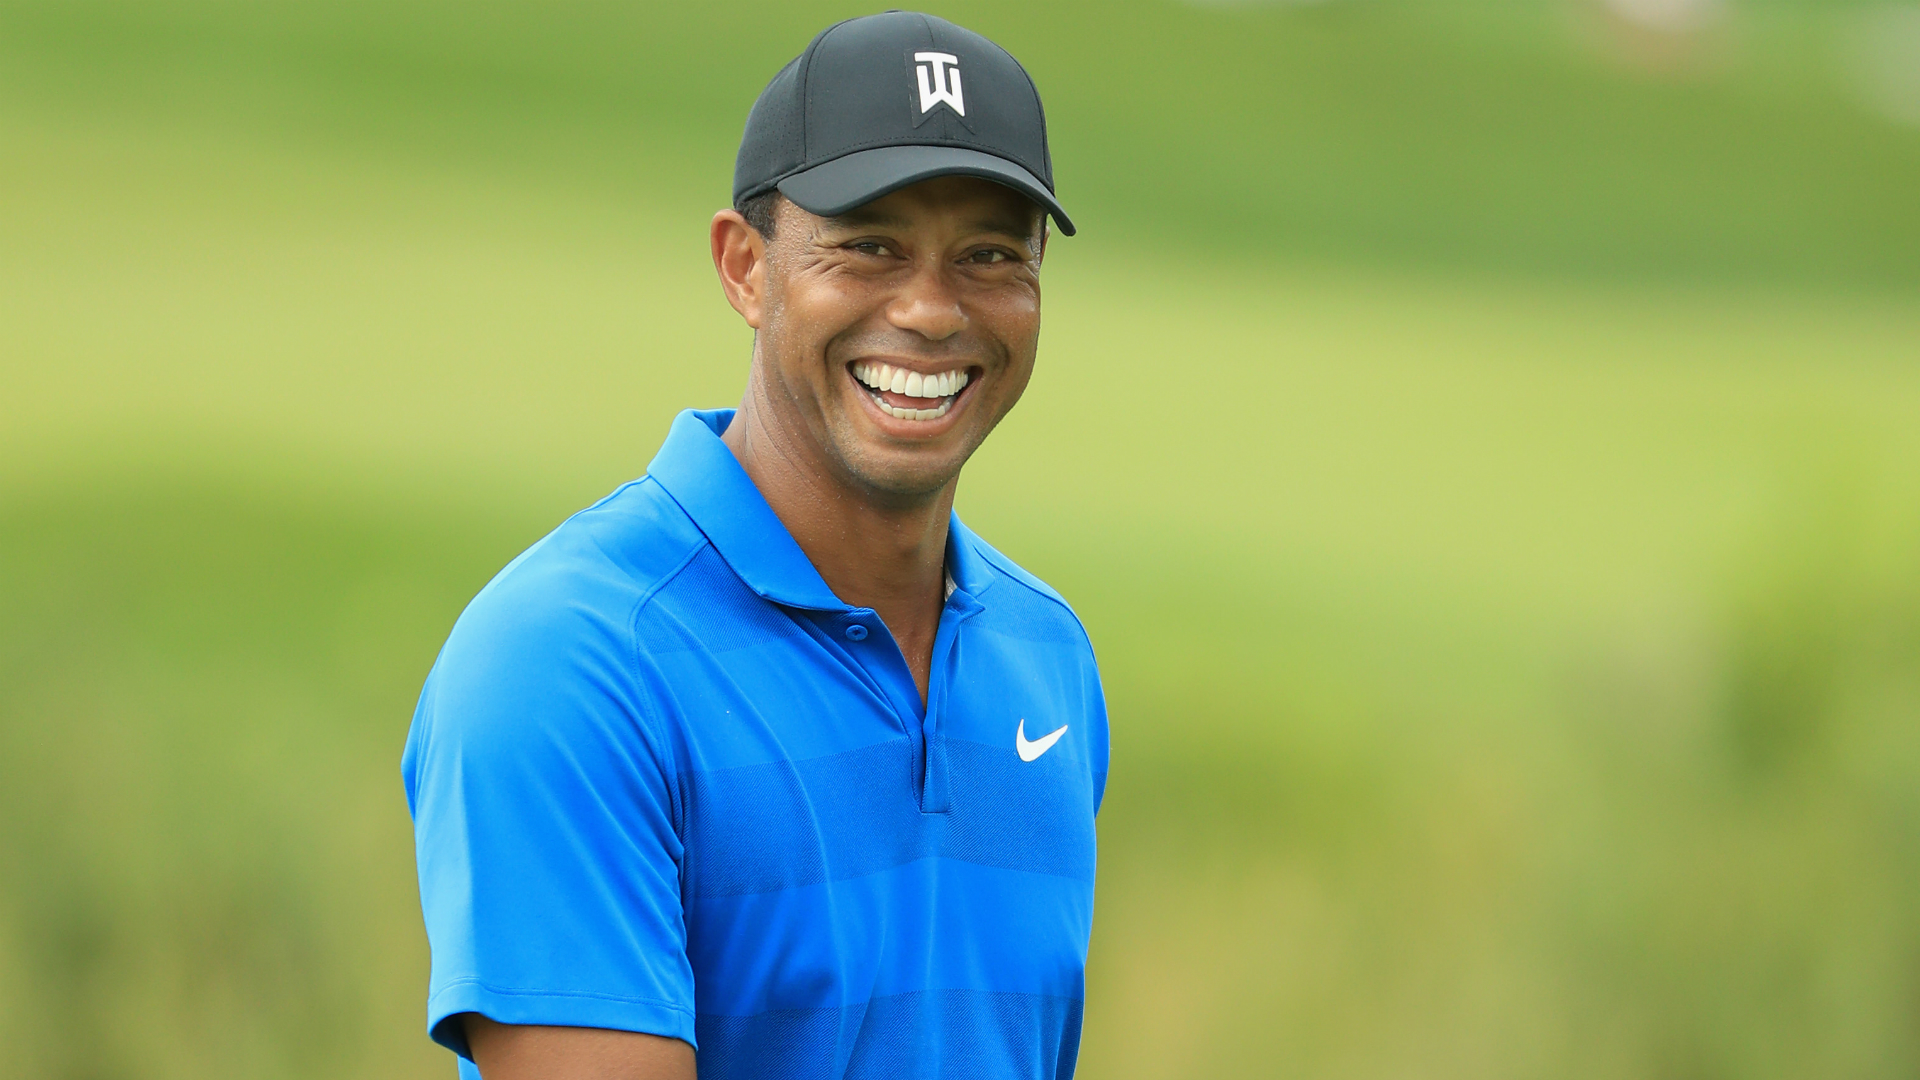 Tiger Woods: 2018 One Of My Best Years